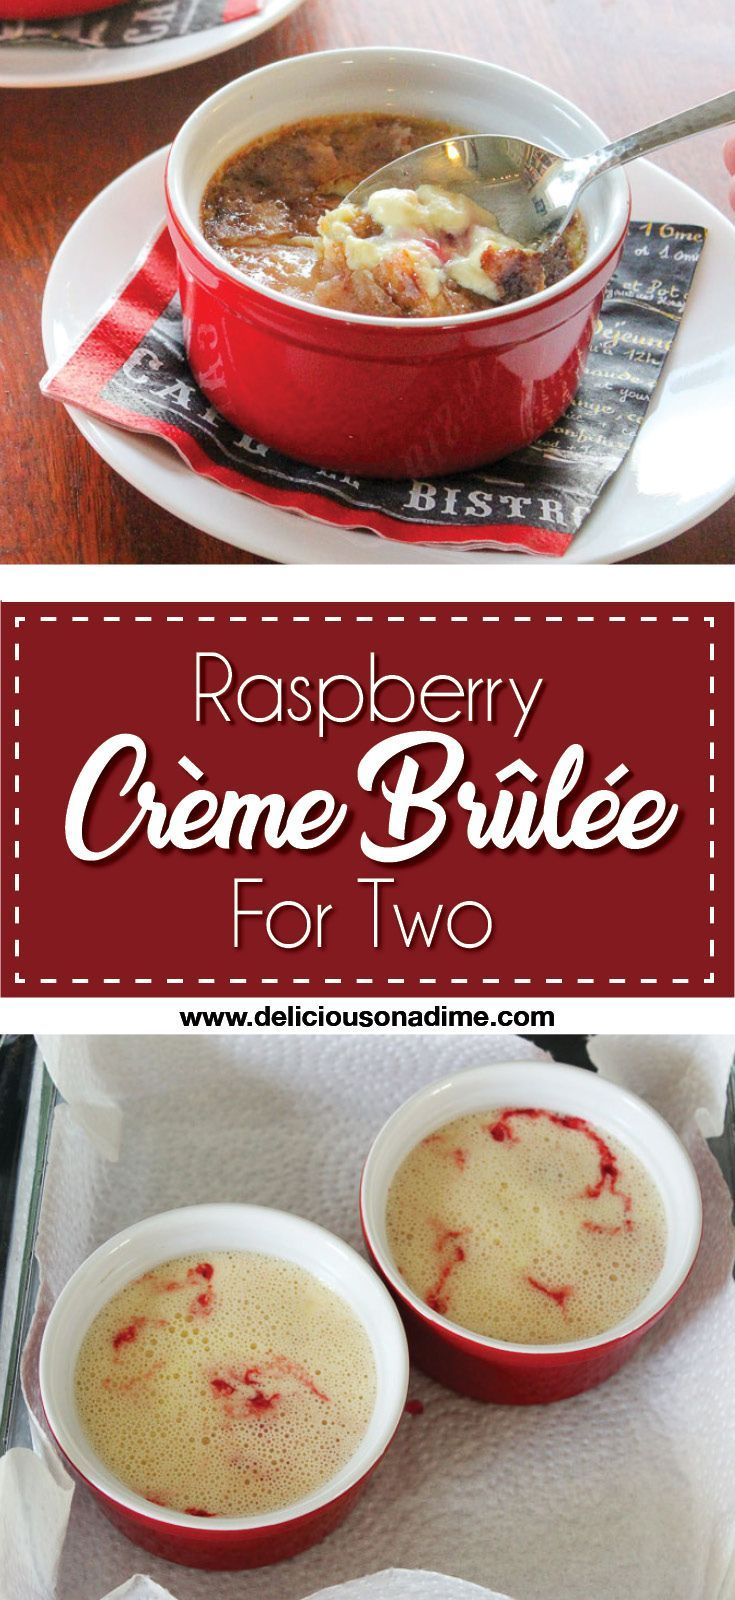 Raspberry Creme Brulee For Two